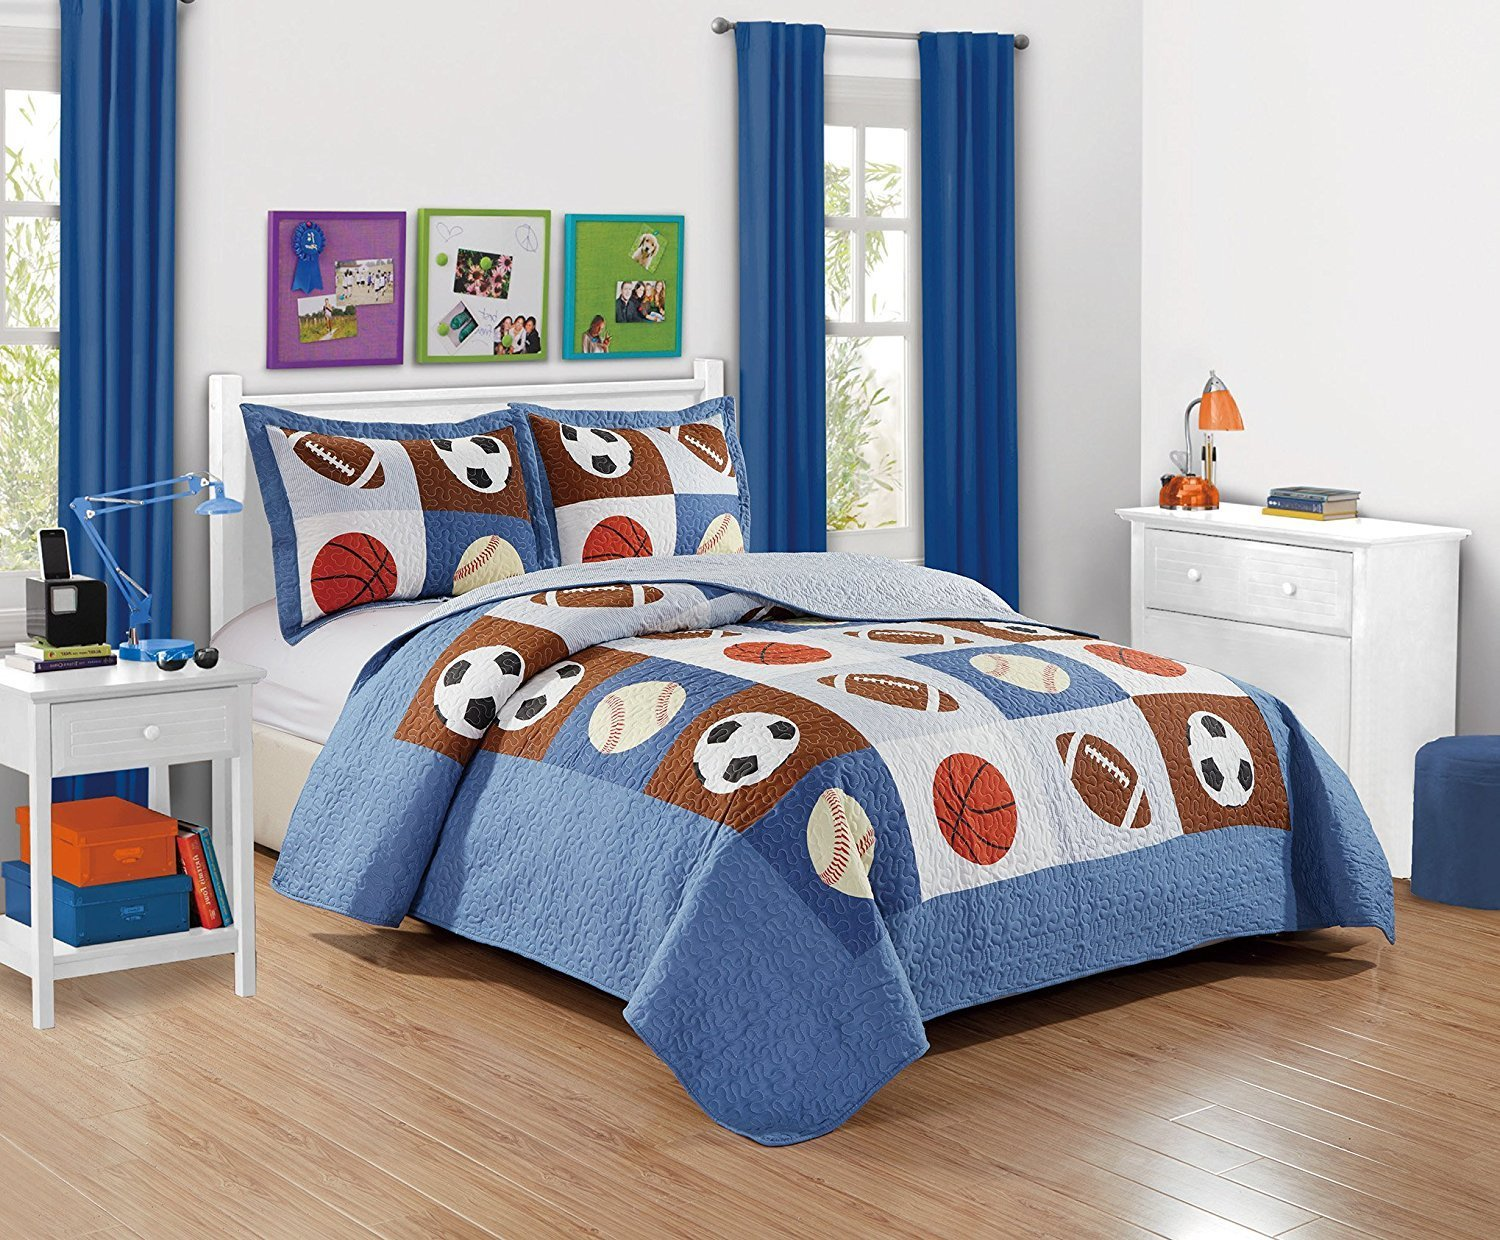 Fancy Collection 2pc Twin Size Quilted Bedspread Set Sports Baseball Football Basketball Soccer Blue White Black Red Orange Off White New